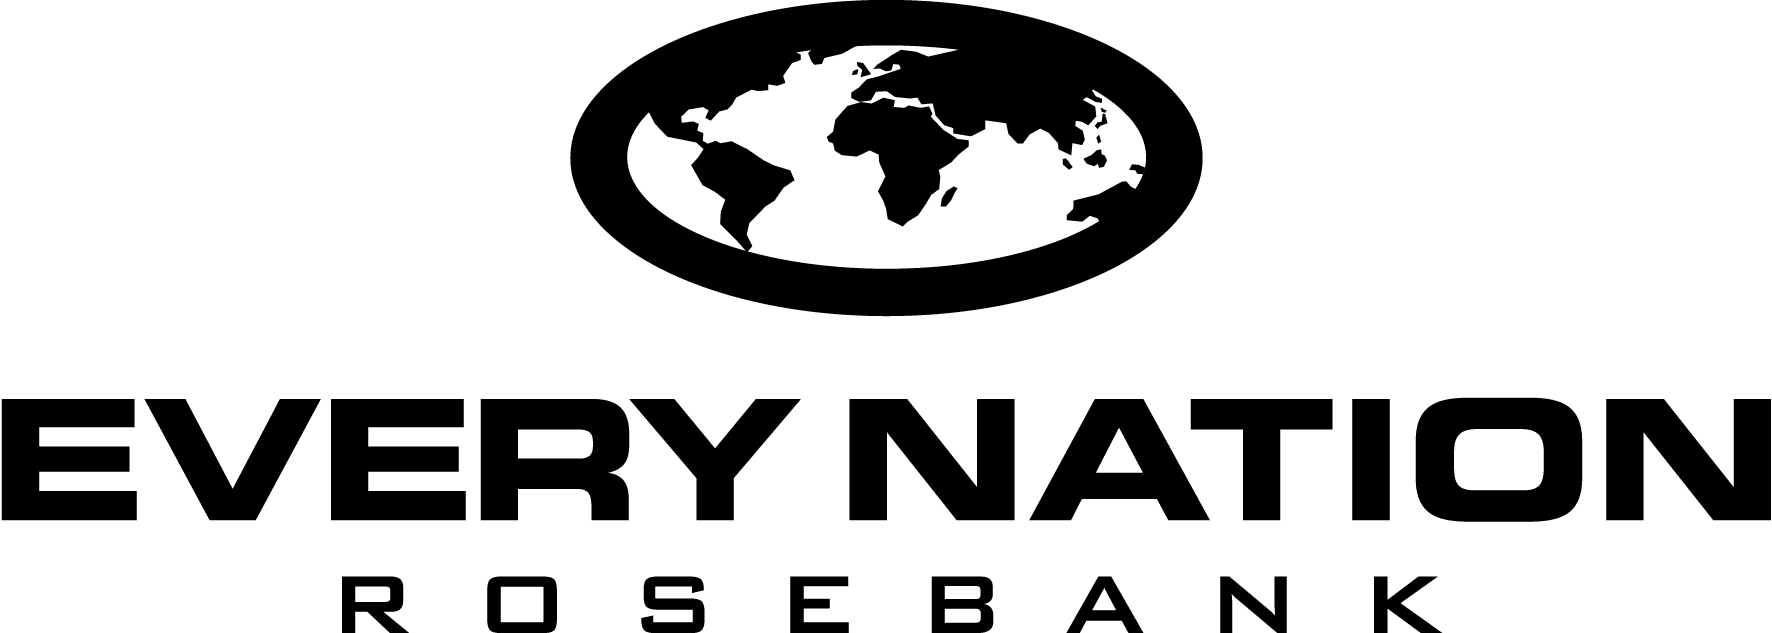 Every Nation Rosebank Retina Logo